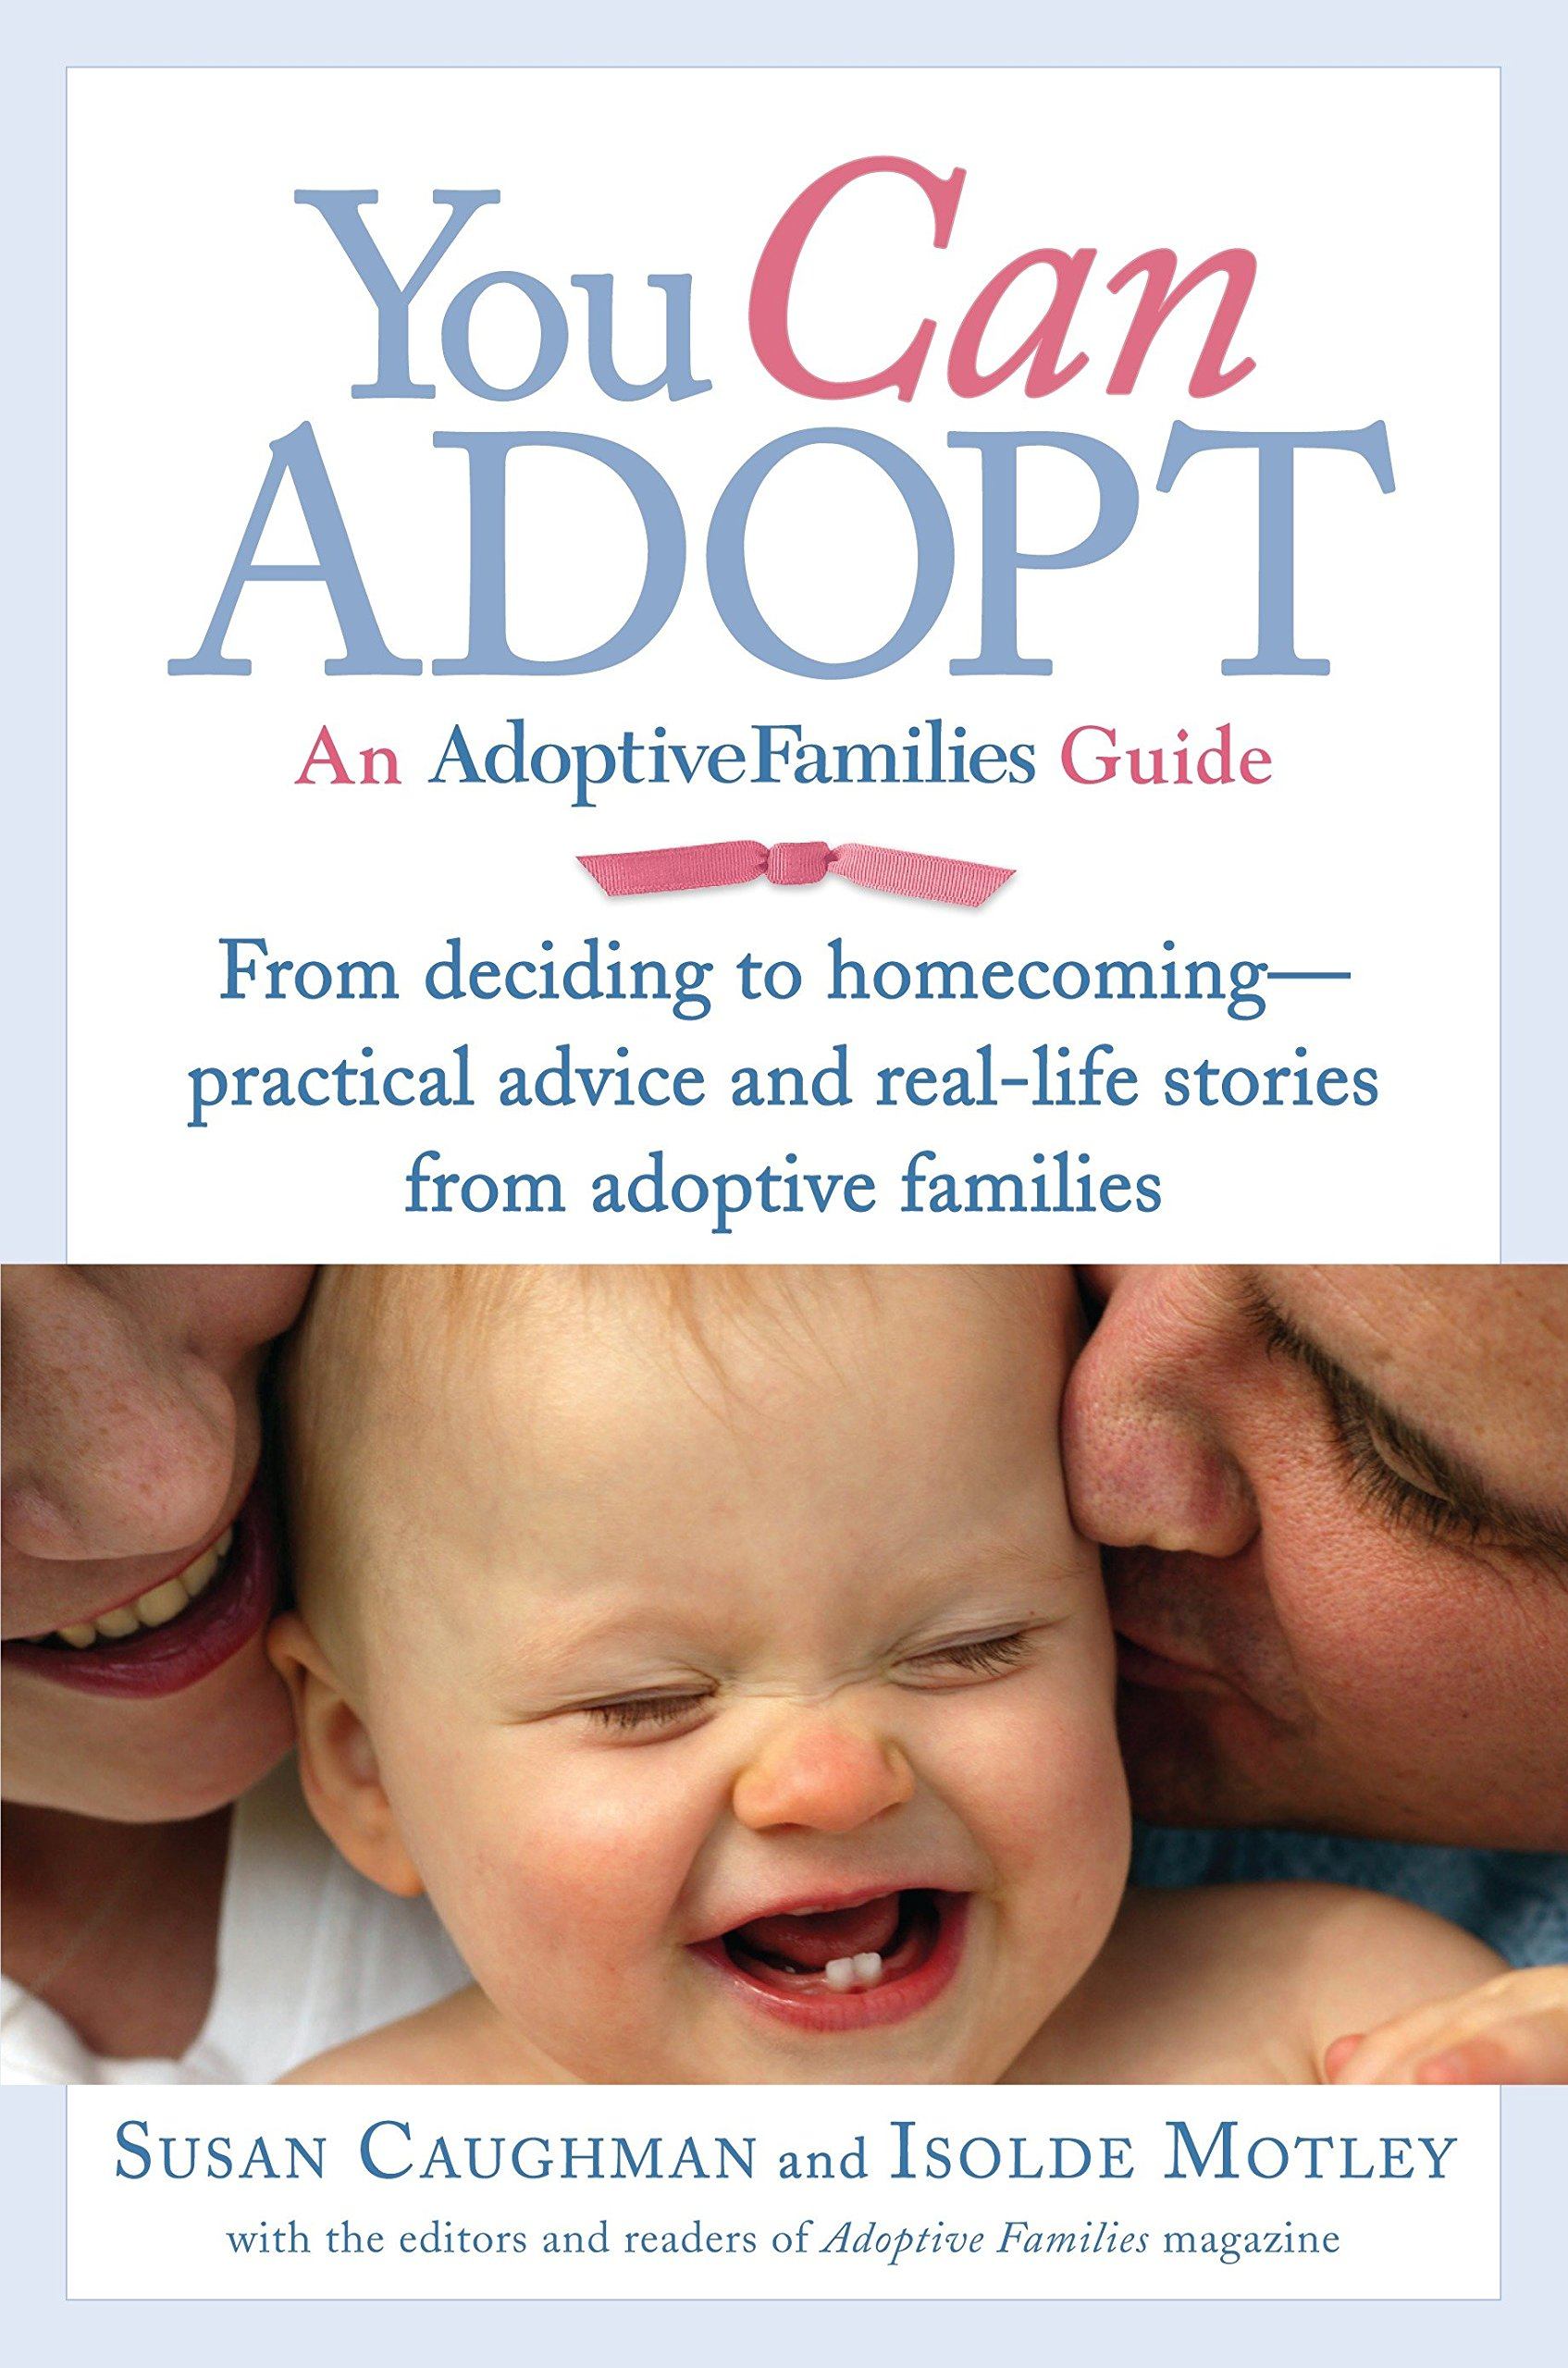 Adoptive family: payments in 2018-2019 48